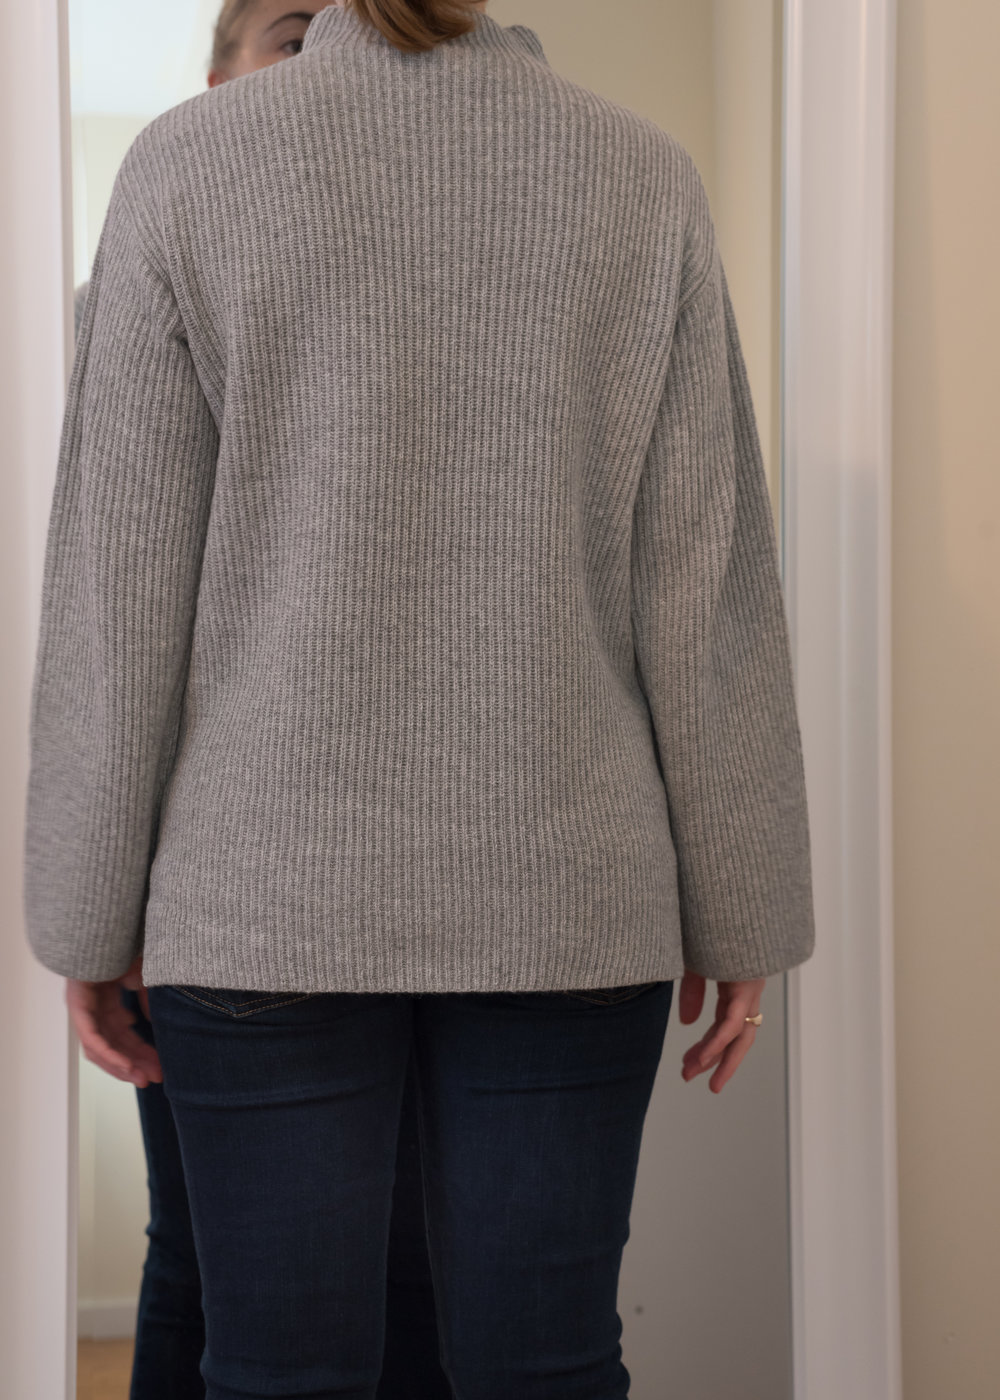 Everlane Cashmere Rib Mockneck Sweater - Size S - Back View